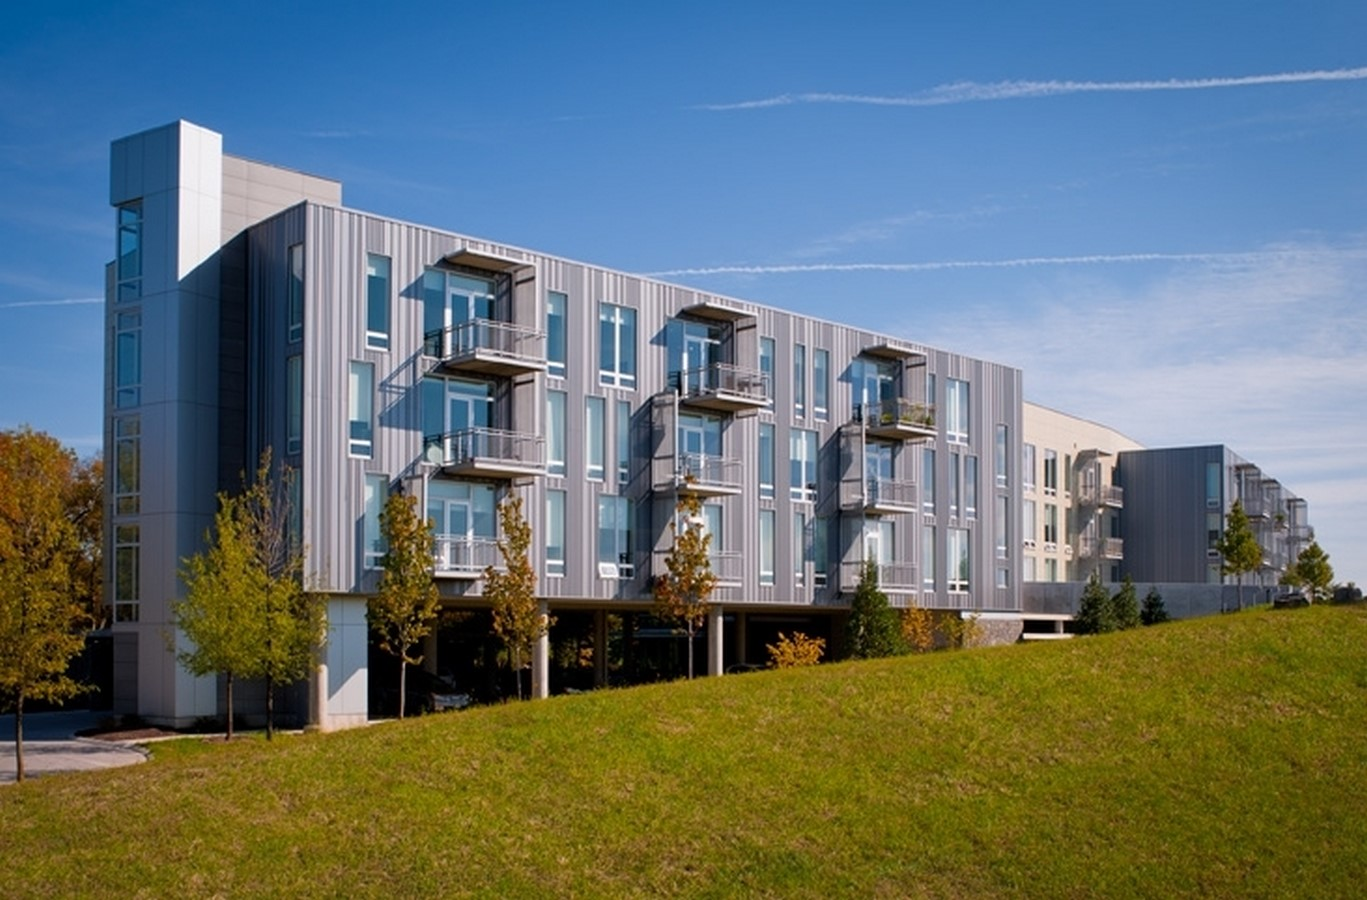 HHMI Janelia Research Campus Apartments - Sheet2